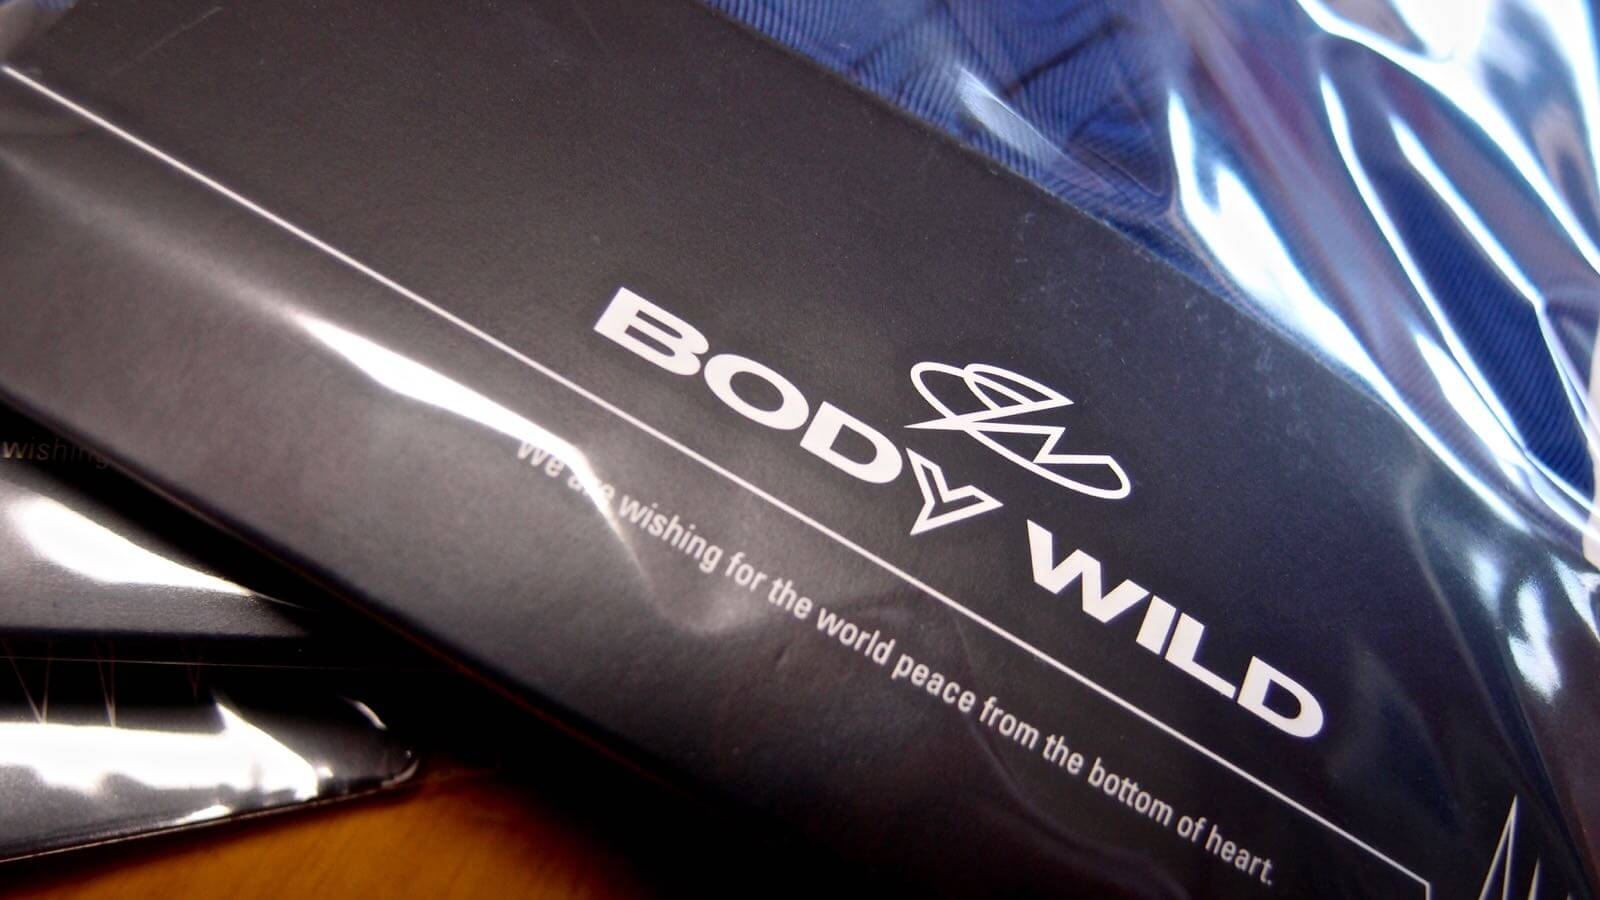 0122 Fashionable underwear BODY WILD is recommended 14